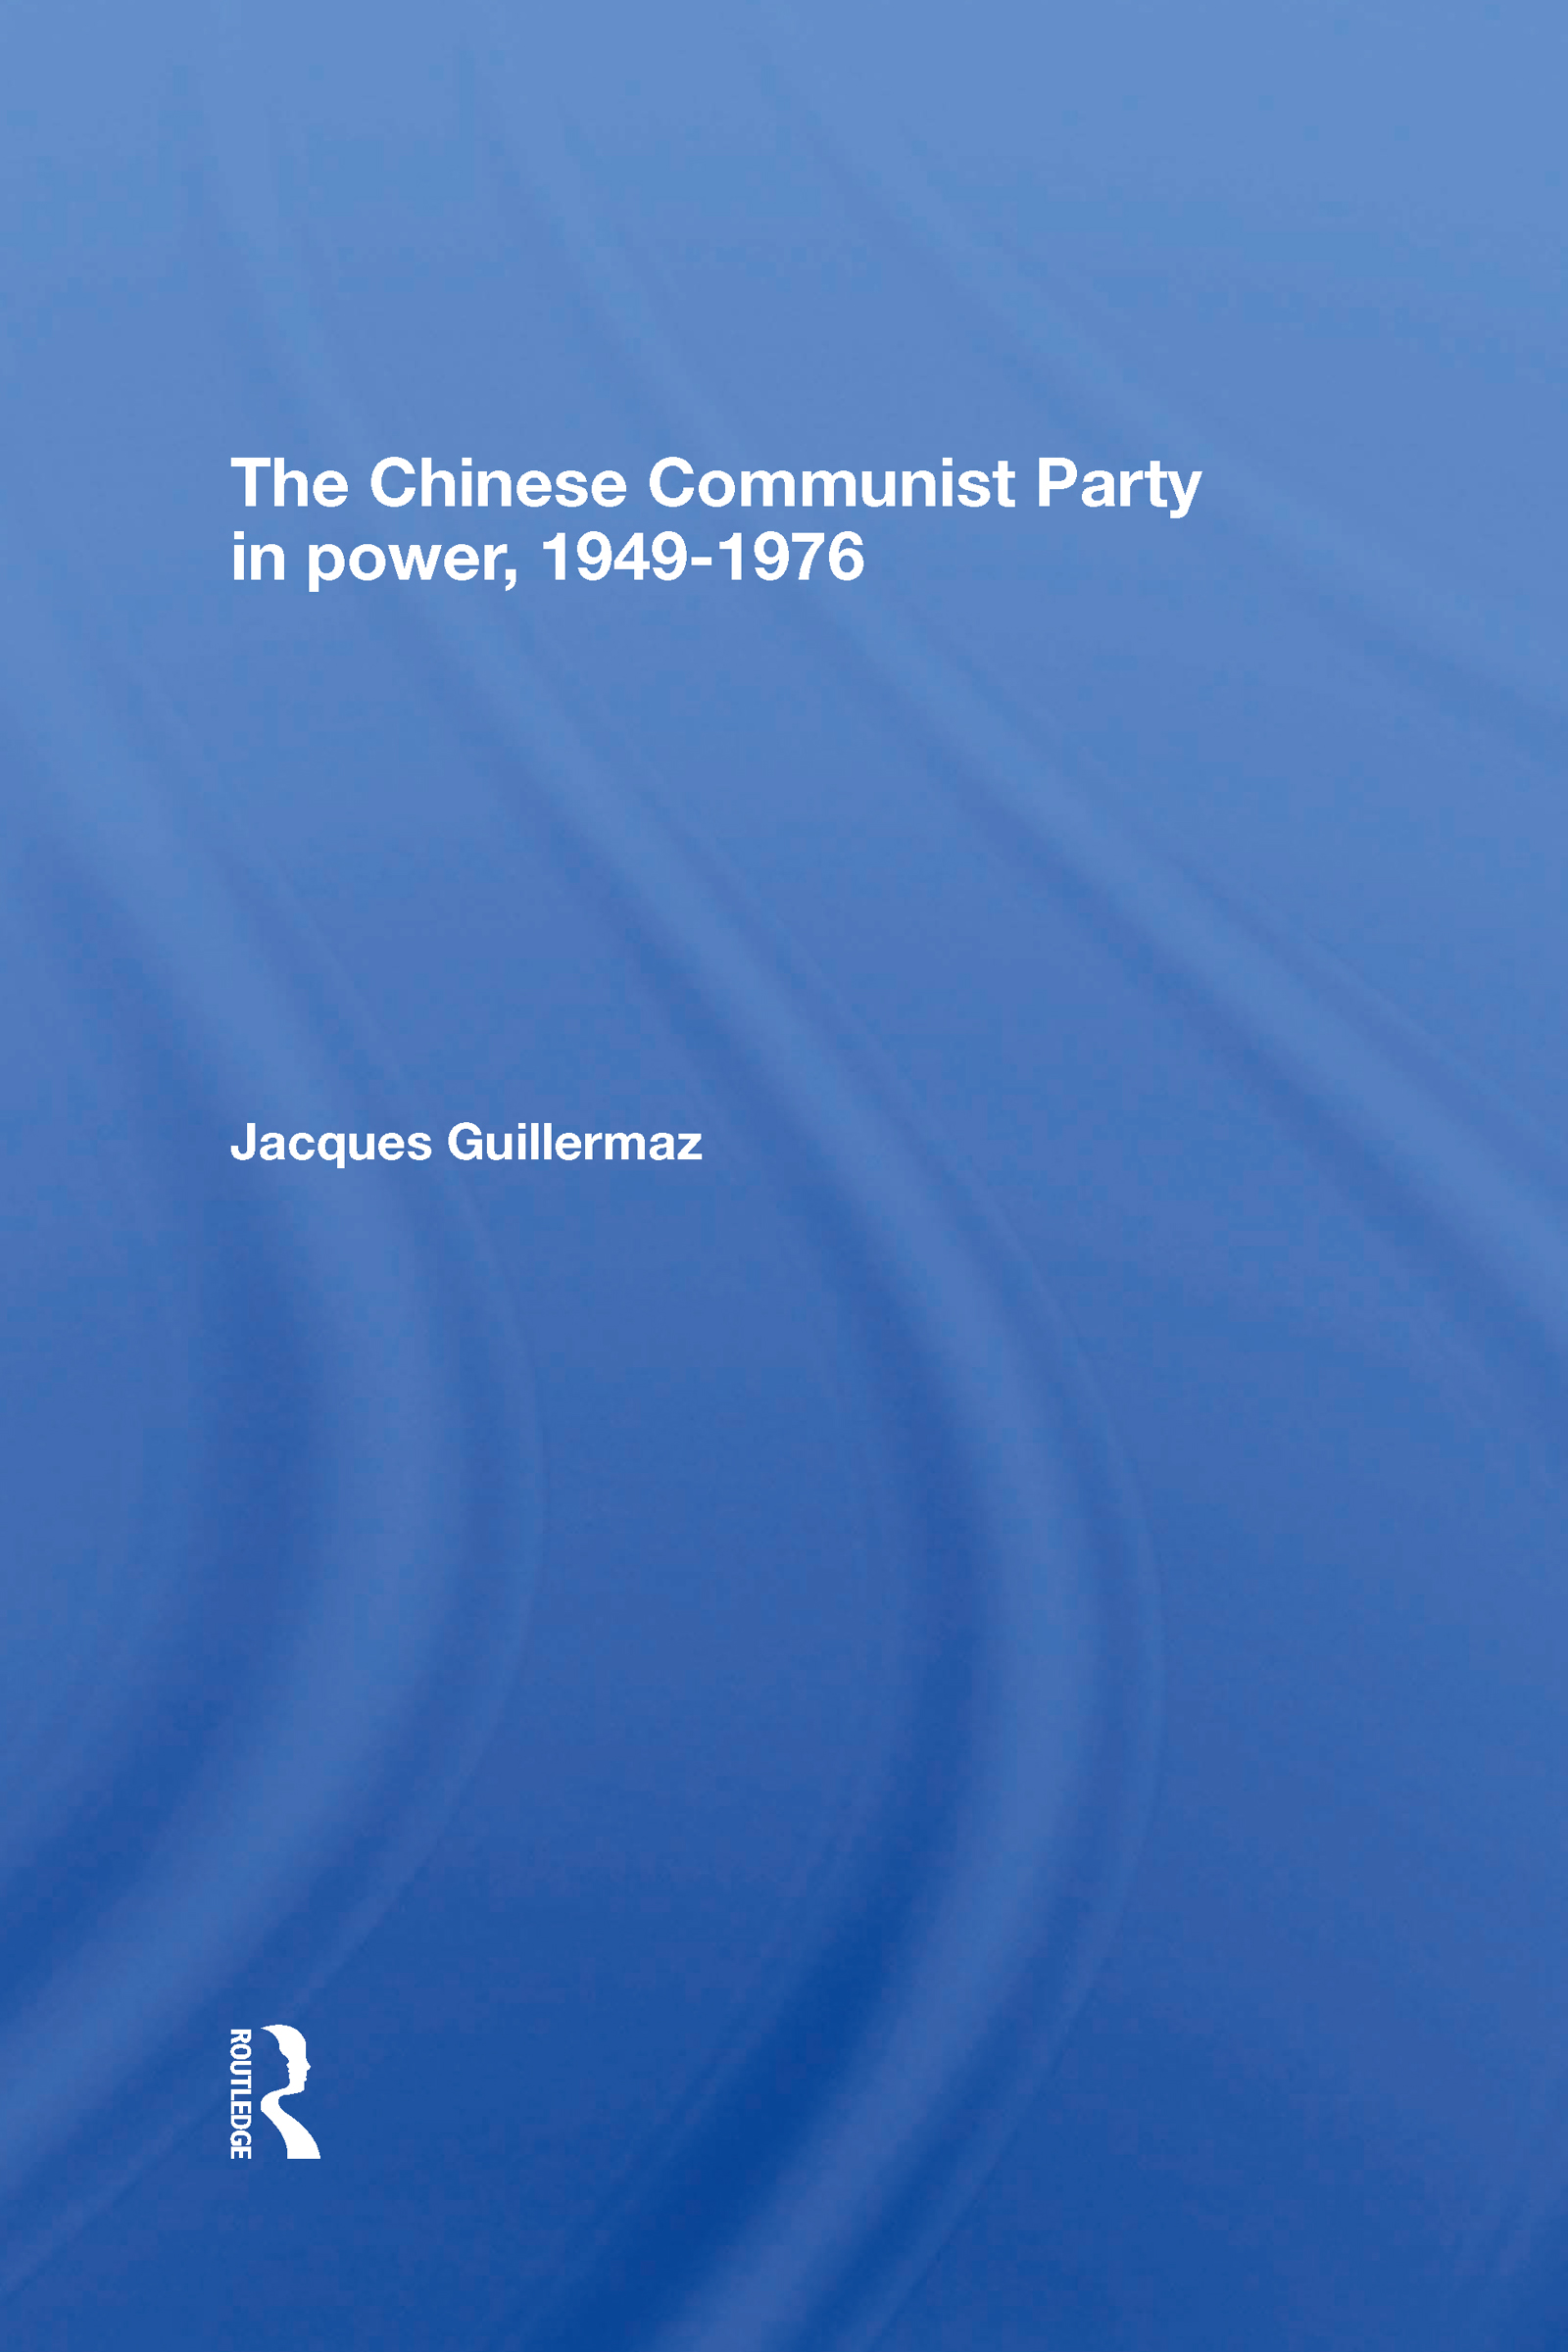 The Chinese Communist Party In Power, 1949-1976